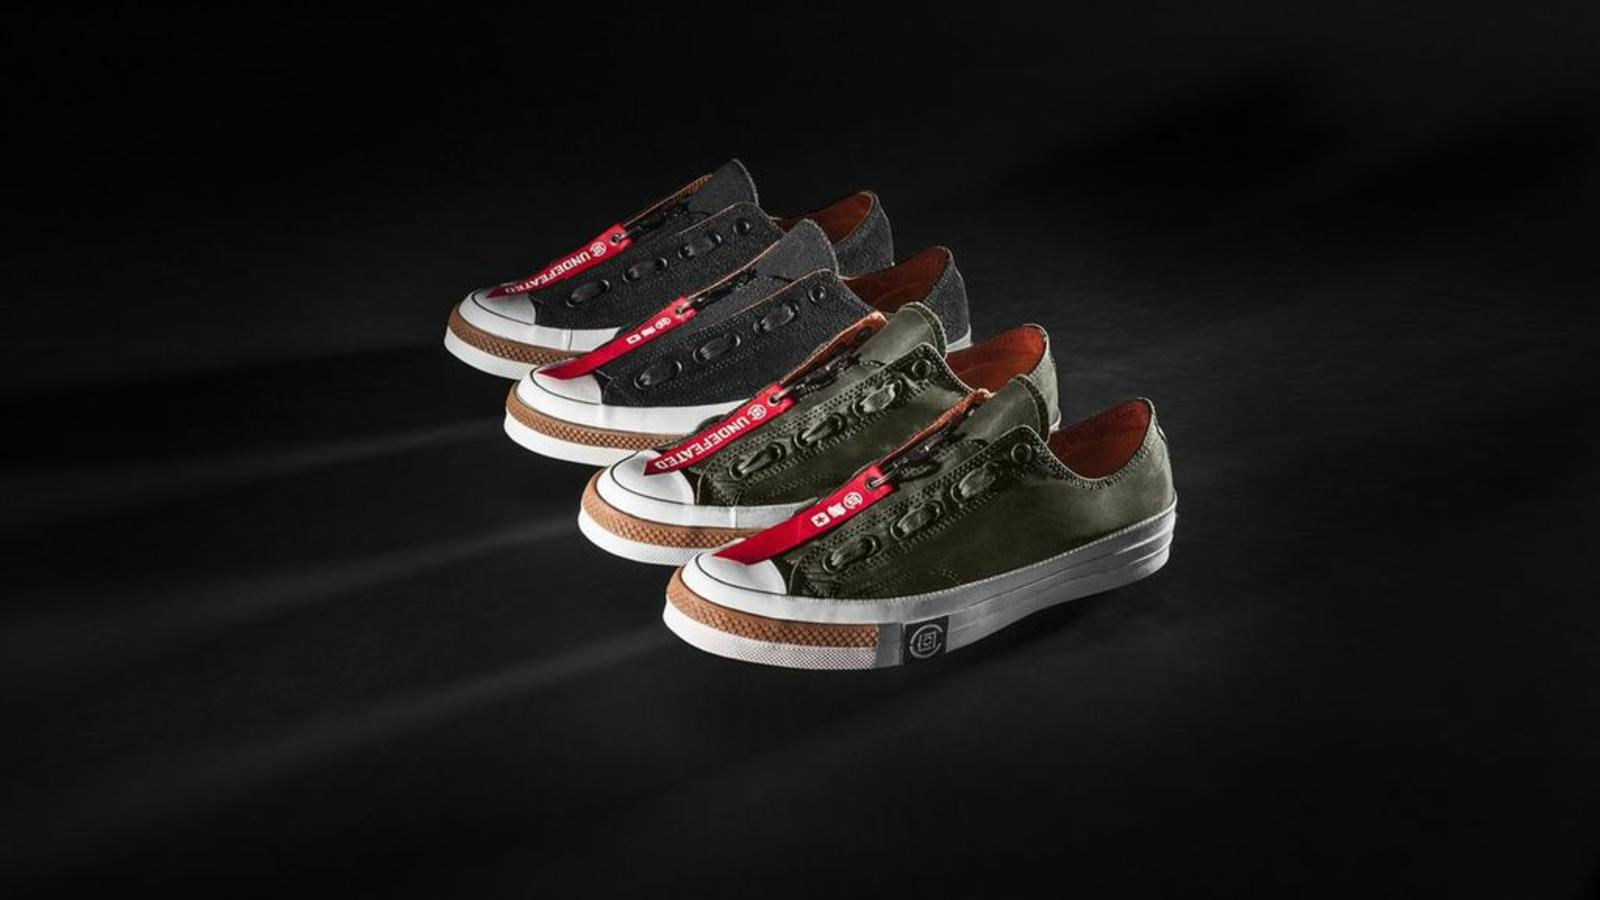 8c9c5a71b022 Converse Teams Up with Undefeated and Clot on Collection - Nike News